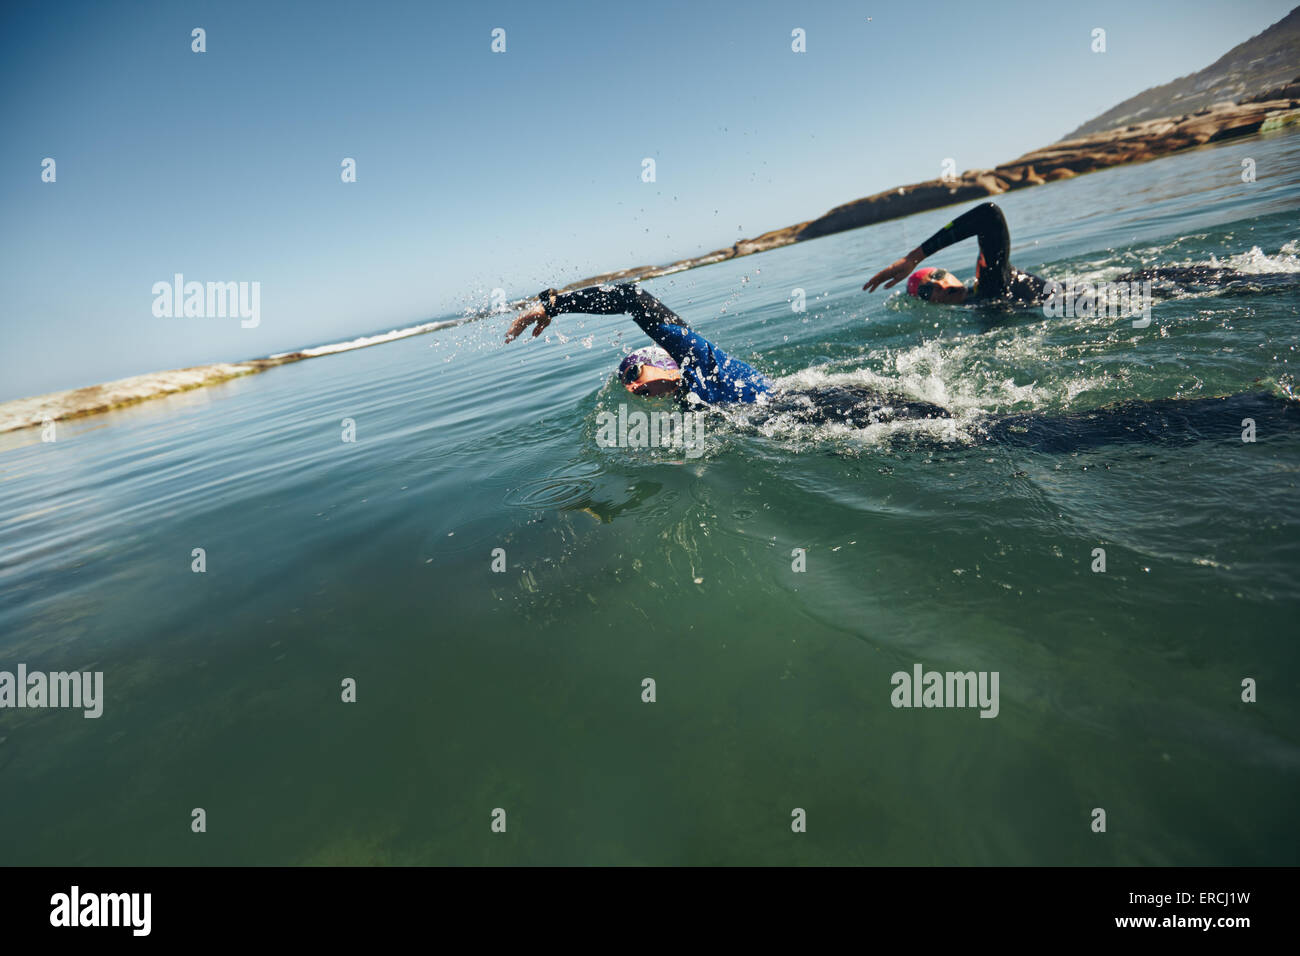 Athletes swimming on triathletic competition. Competitors swims freestyle in the water. - Stock Image